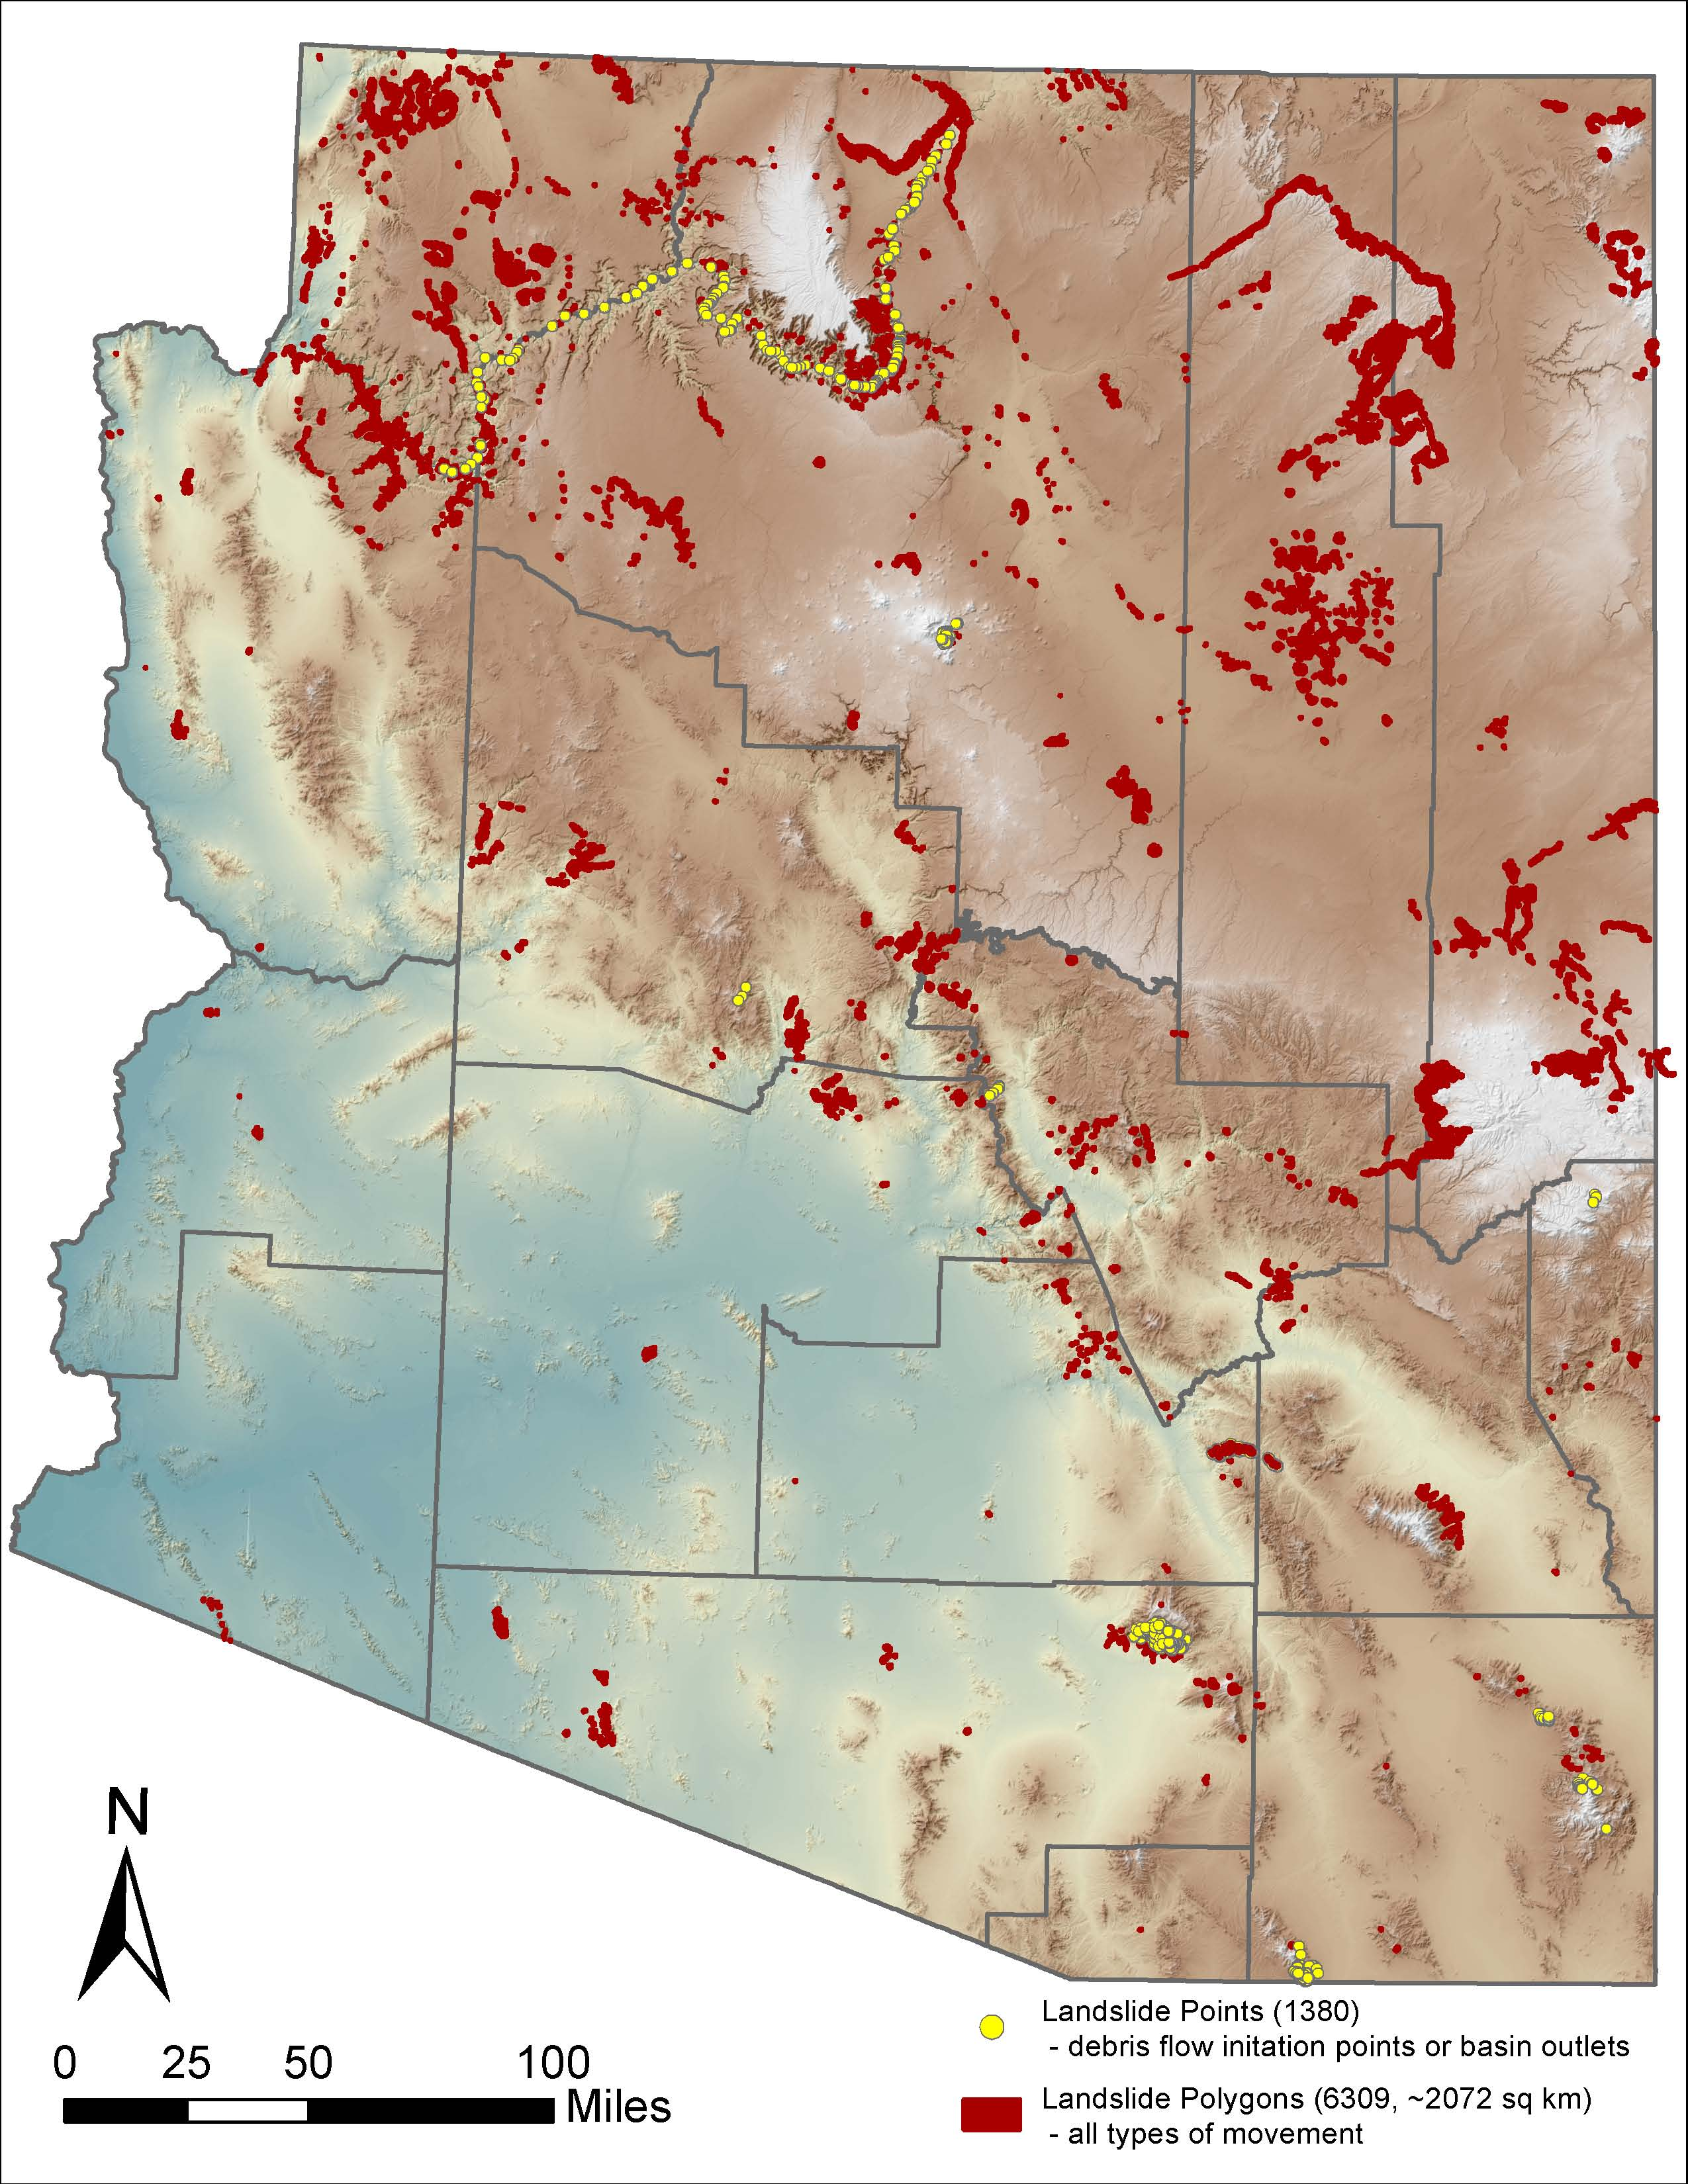 AzSLID - Map representation of landslide features distributed thoughout Arizona